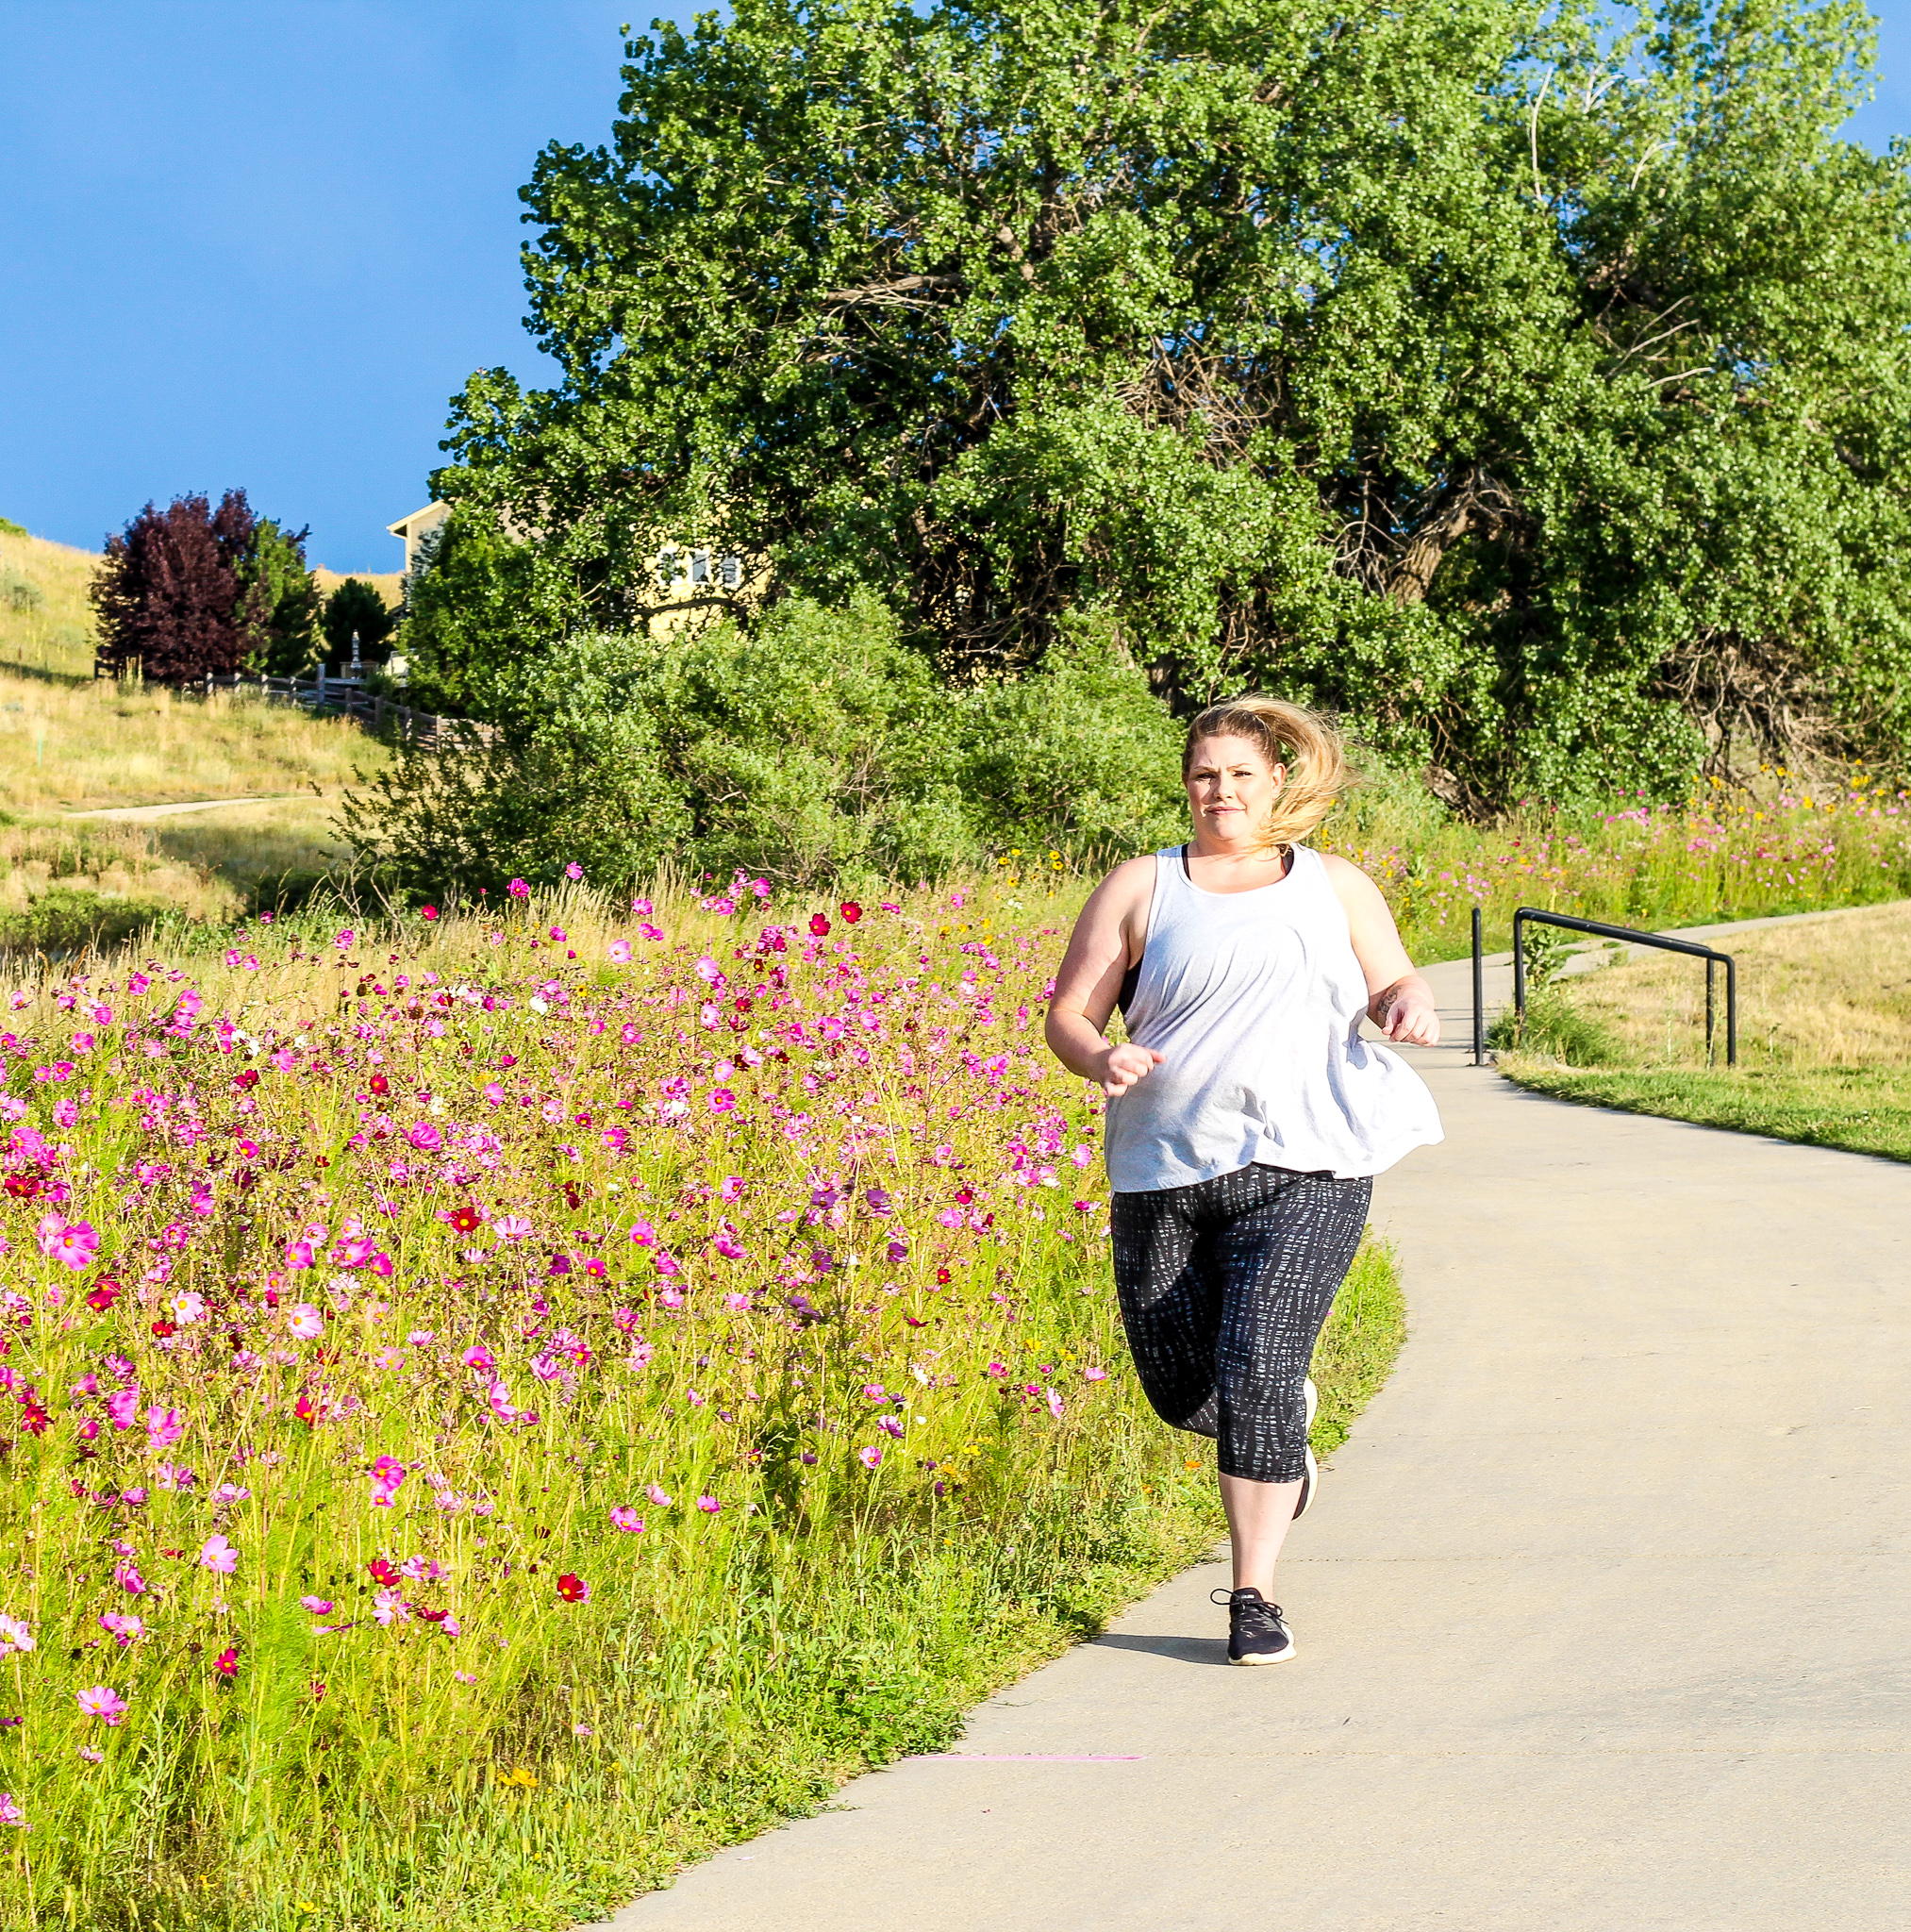 Plus size woman running outside by pink flowers and green trees